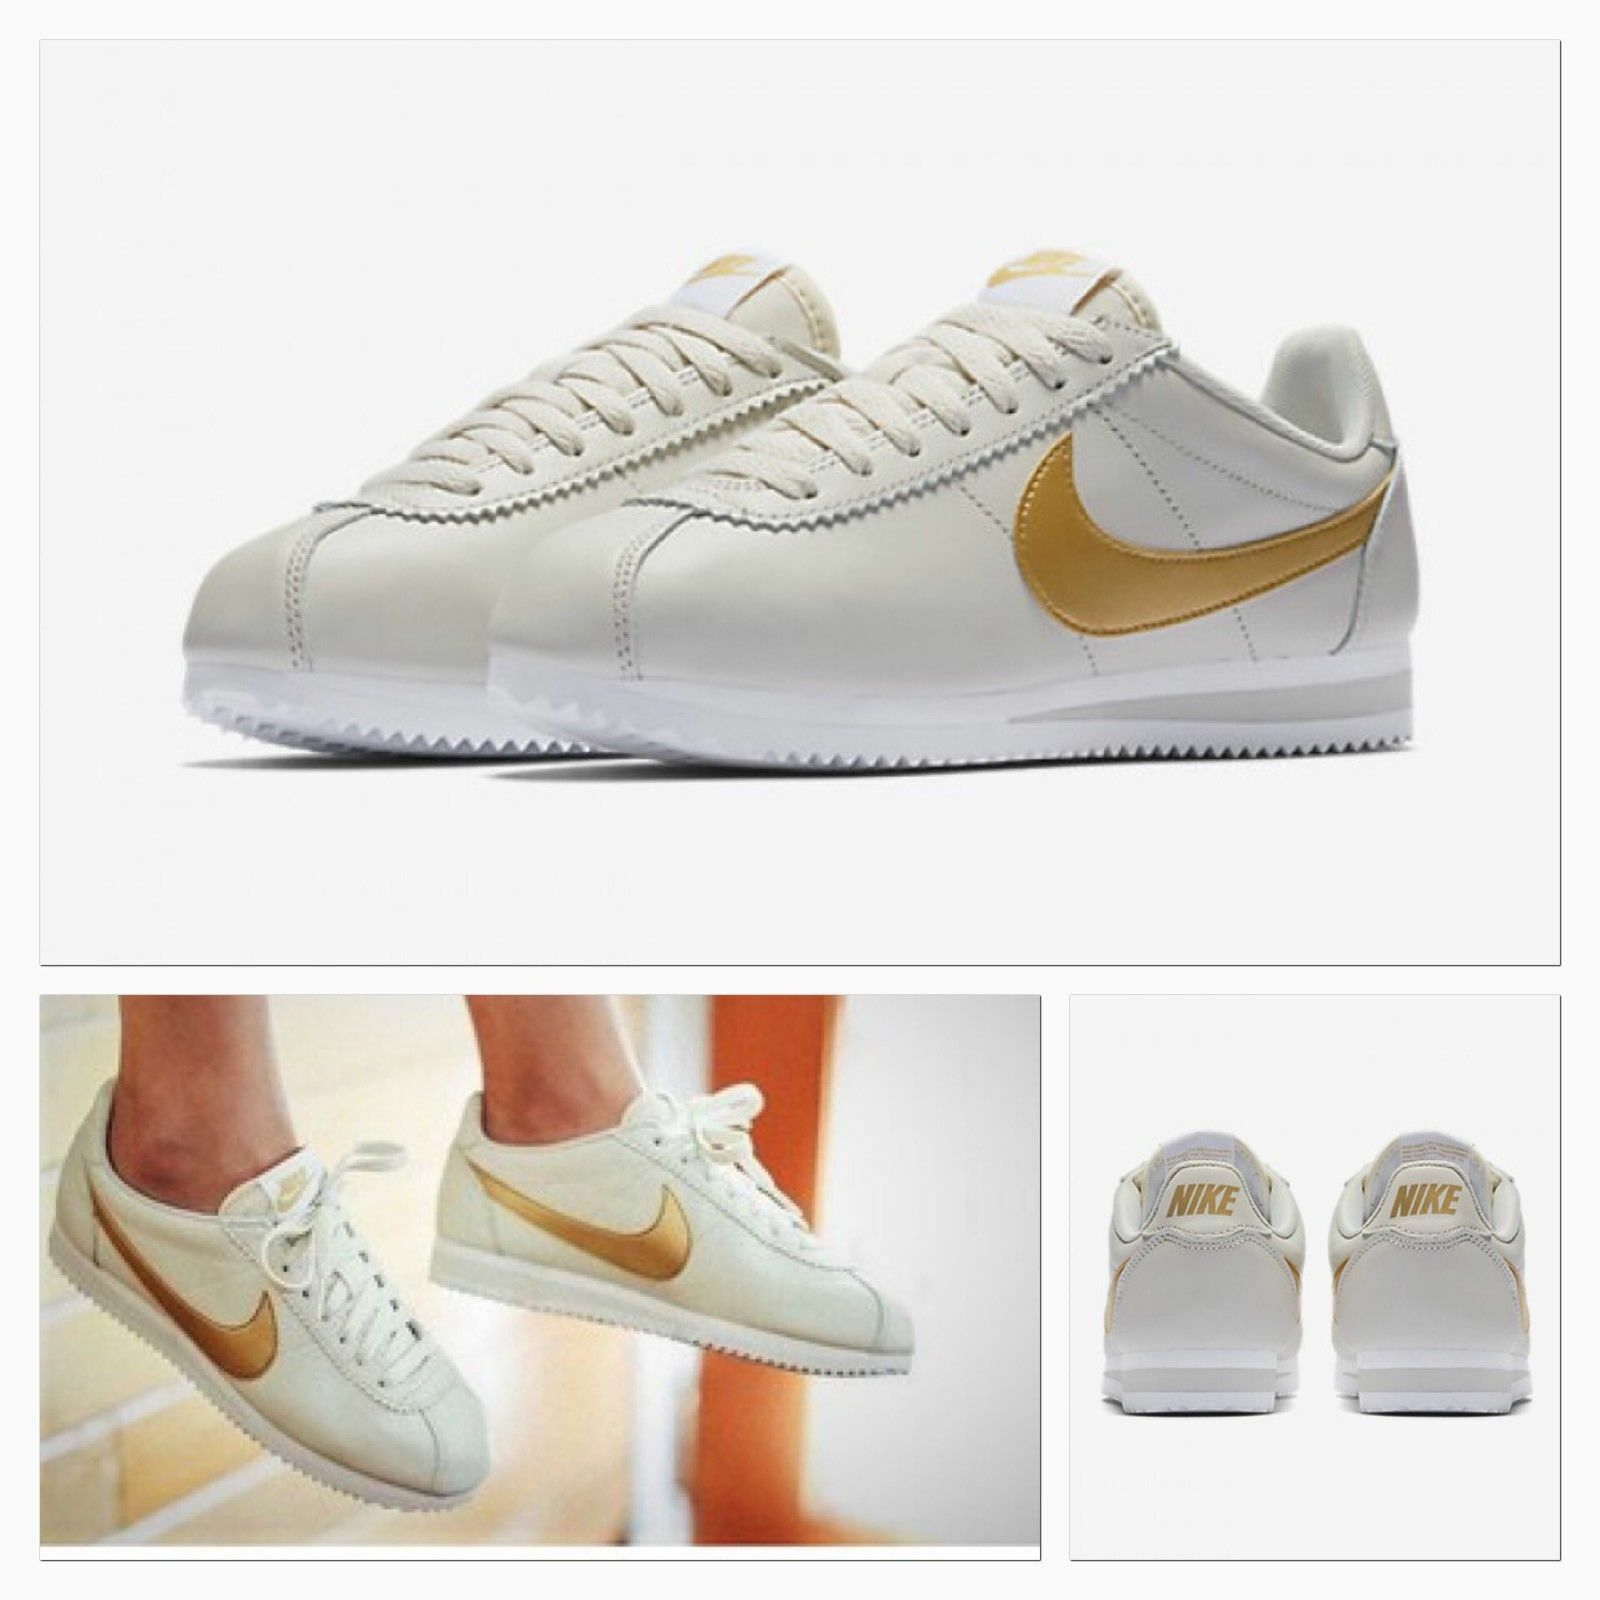 Damenschuhe NIKE CLASSIC CORTEZ LEATHER SIZE 4 EUR 37.5 (807471 011) LIGHT BONE/ GOLD